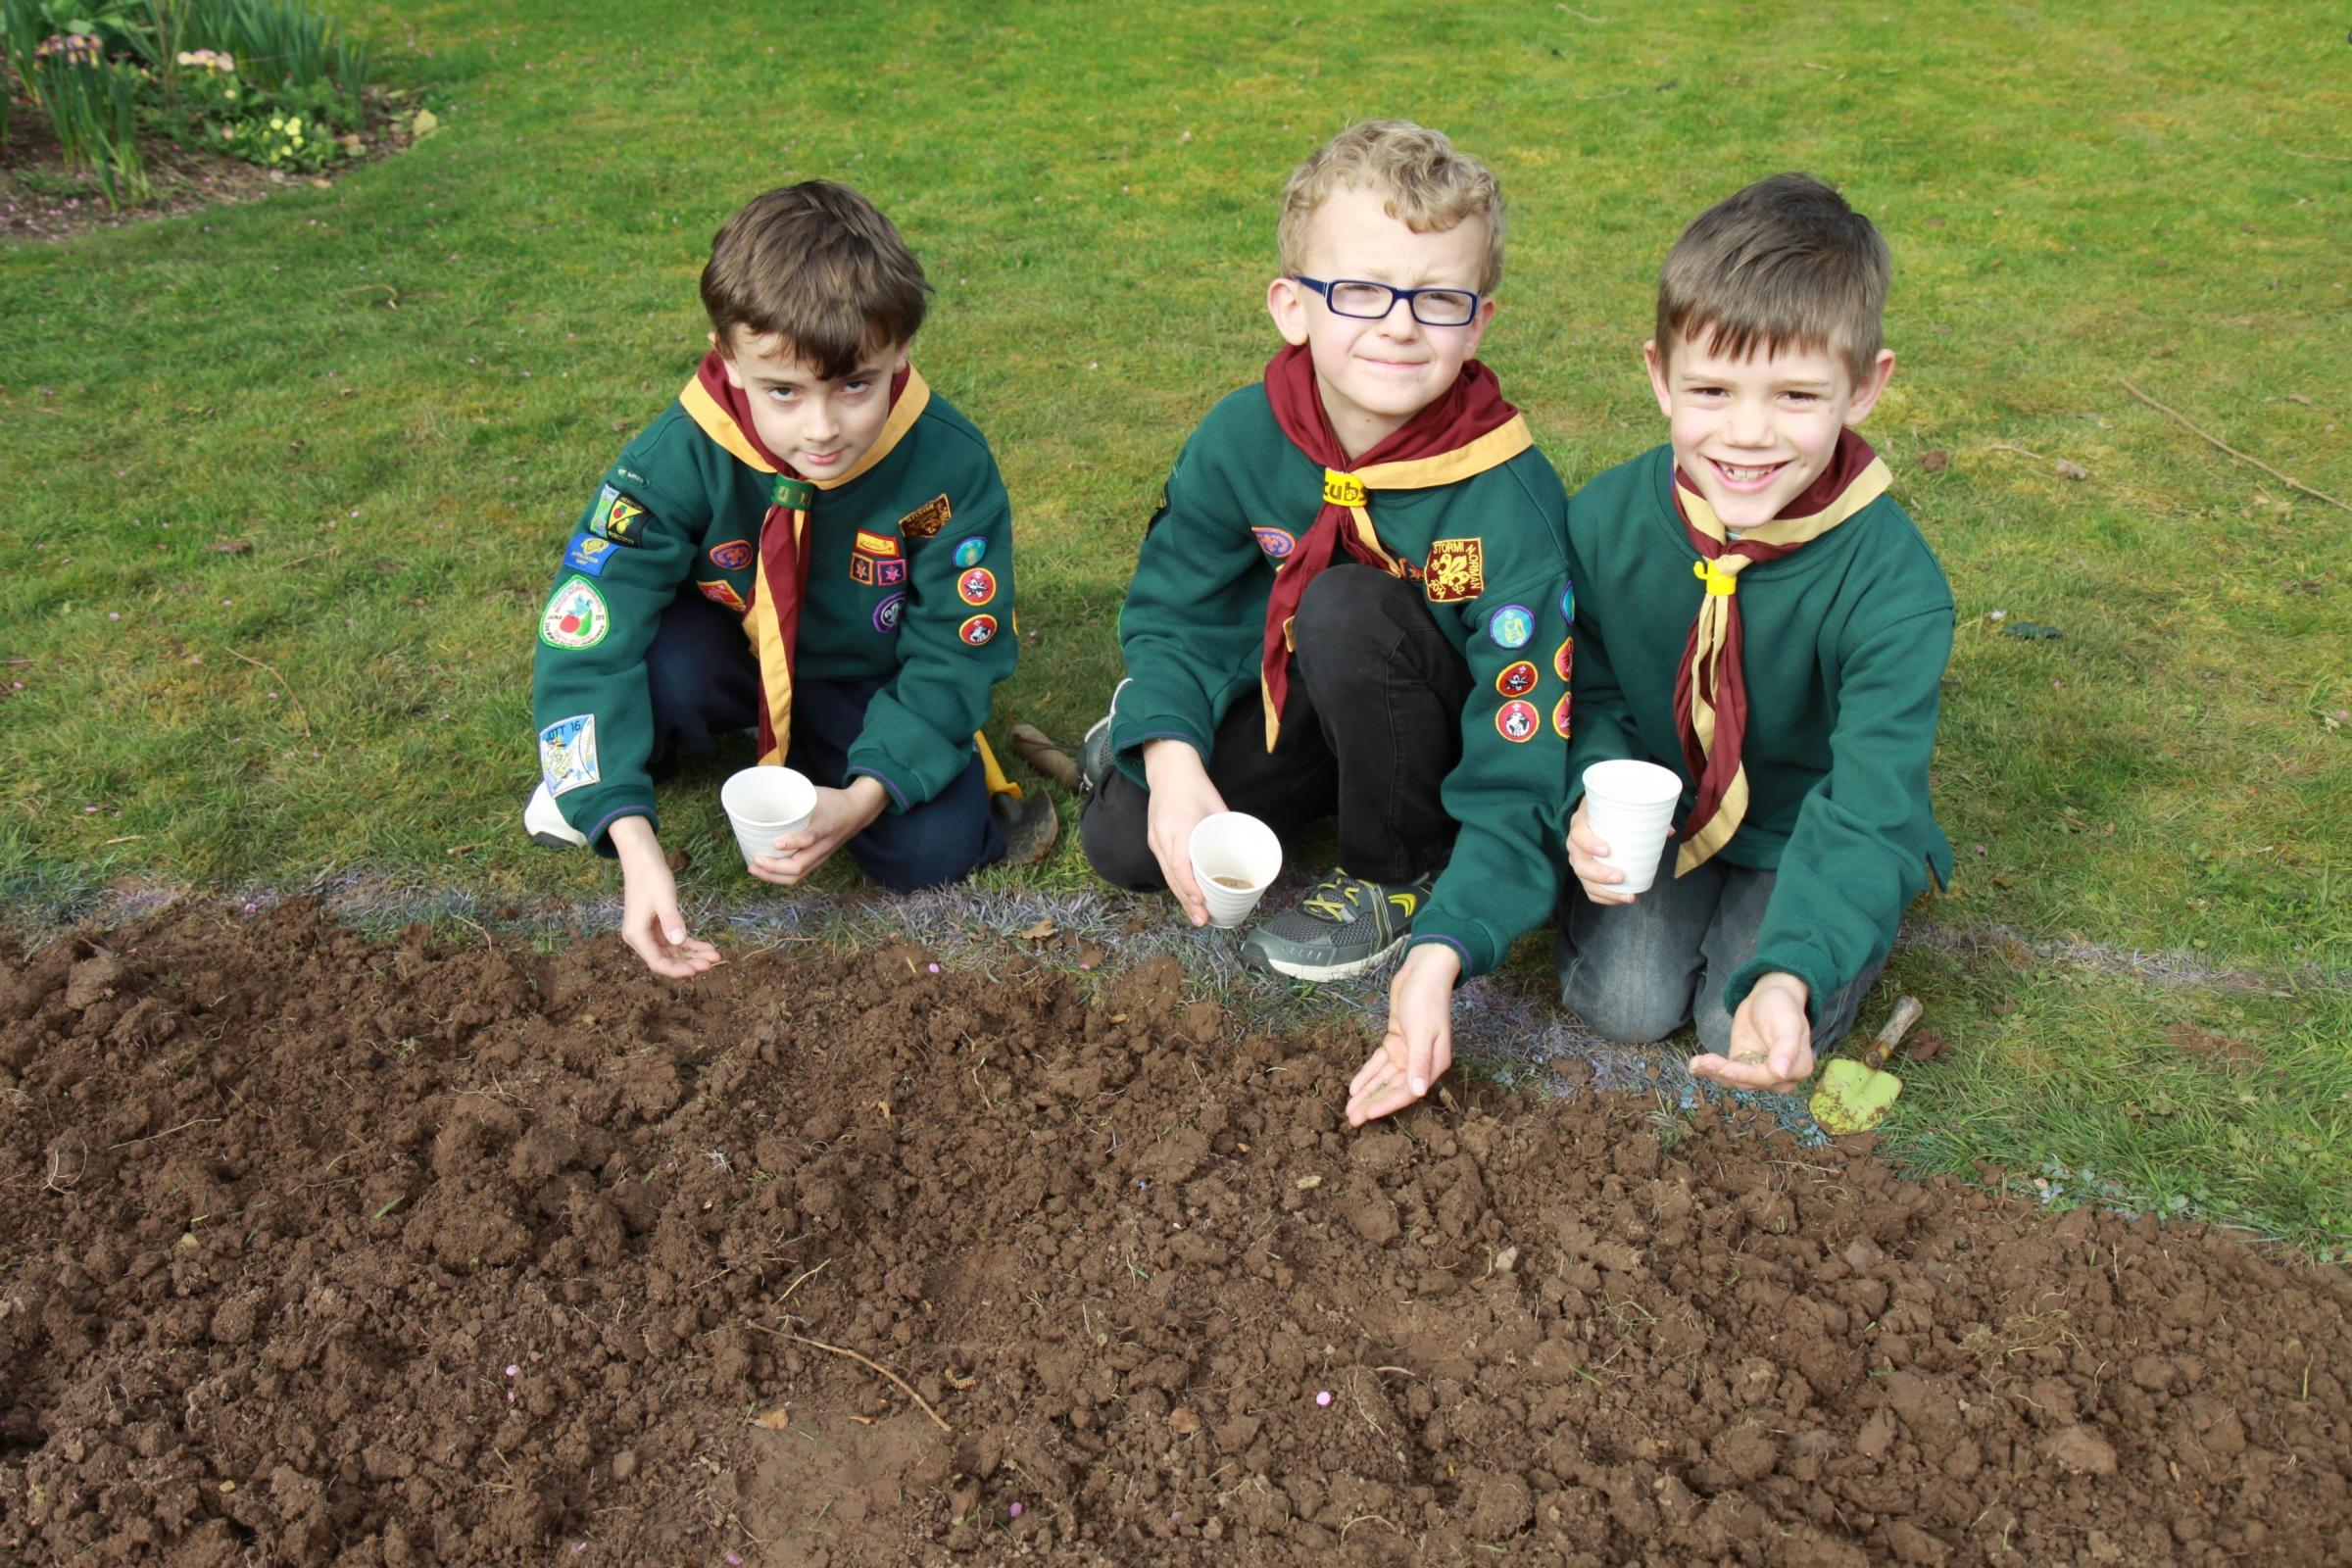 Tenbury Cubs Dylan and Morgan Carver with Alex Price